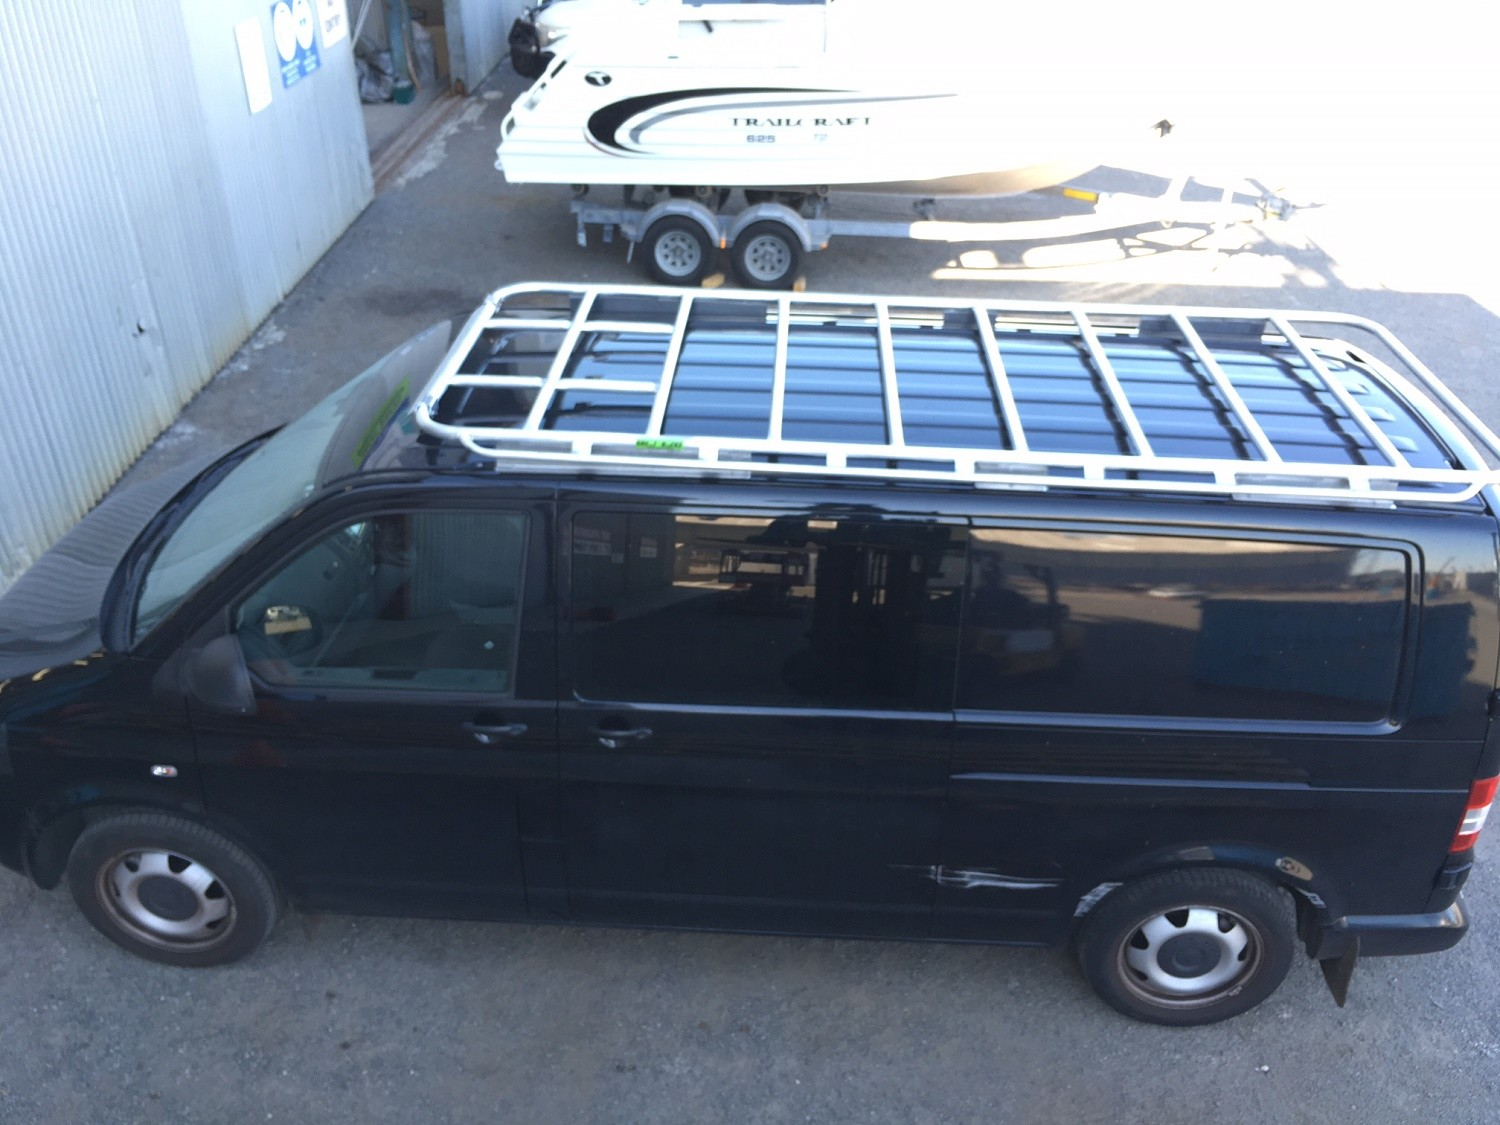 Van Roof Racks >> Van Roof Racks Perth Great Racks